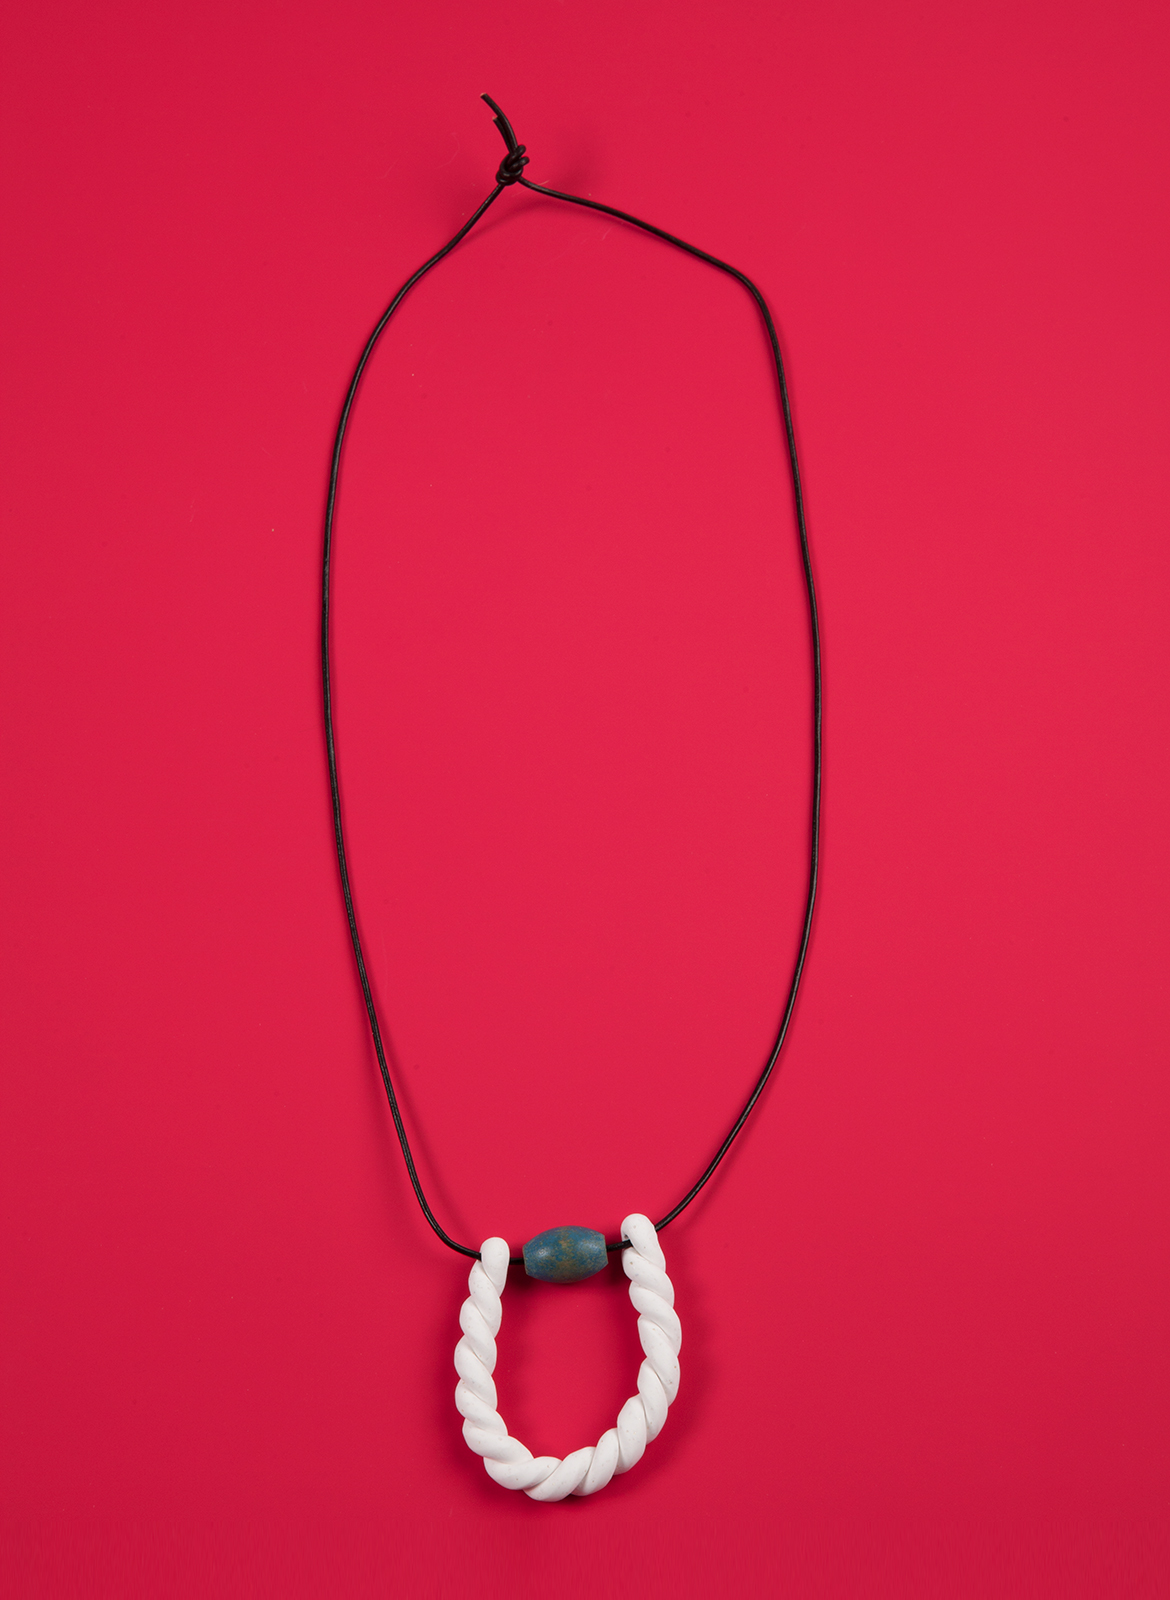 chadkouri-modularnecklace-redbackground